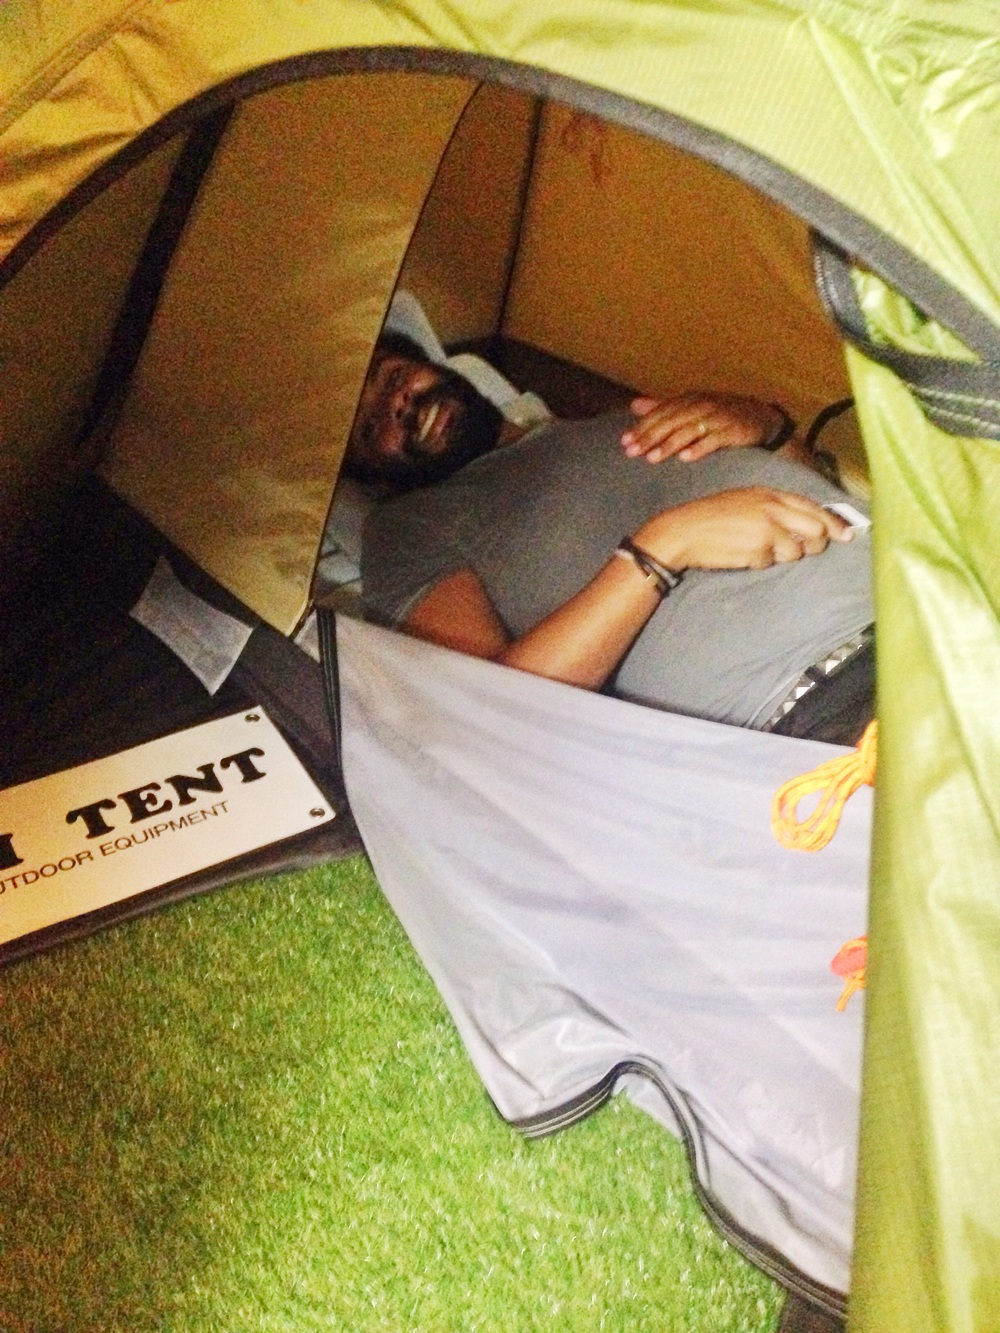 Like the sign says, it's a tent